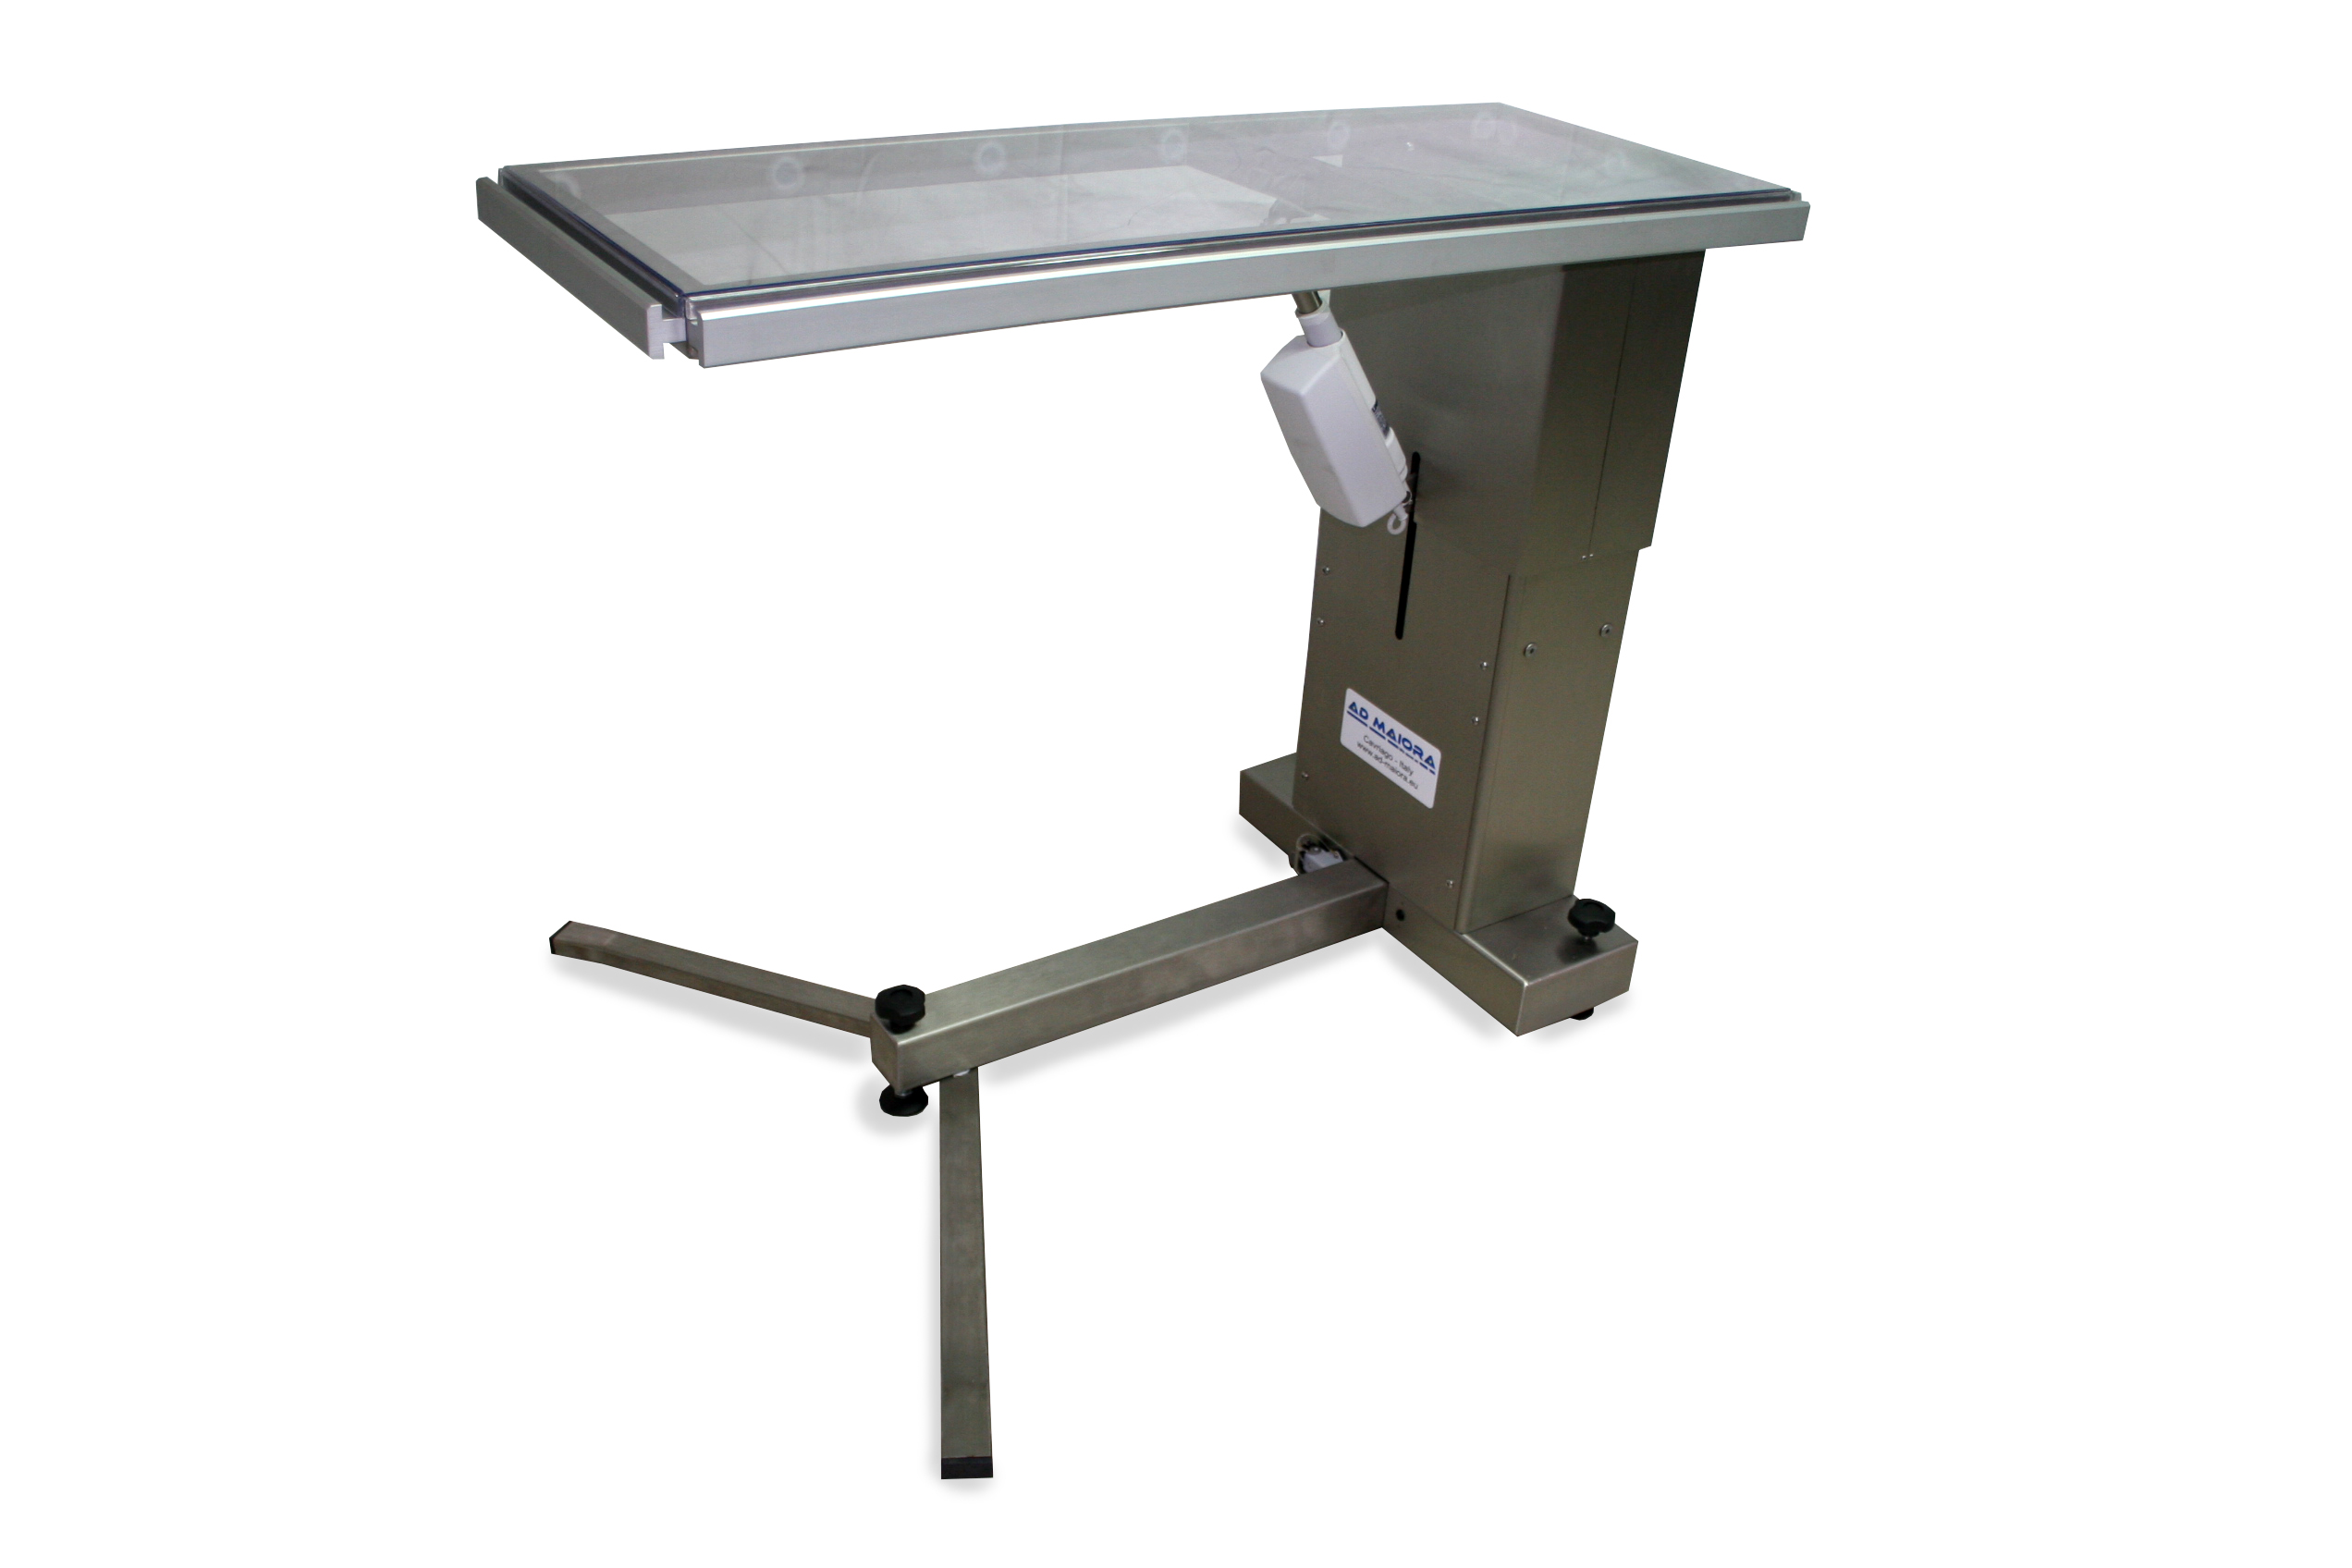 Lexan top for surgical table